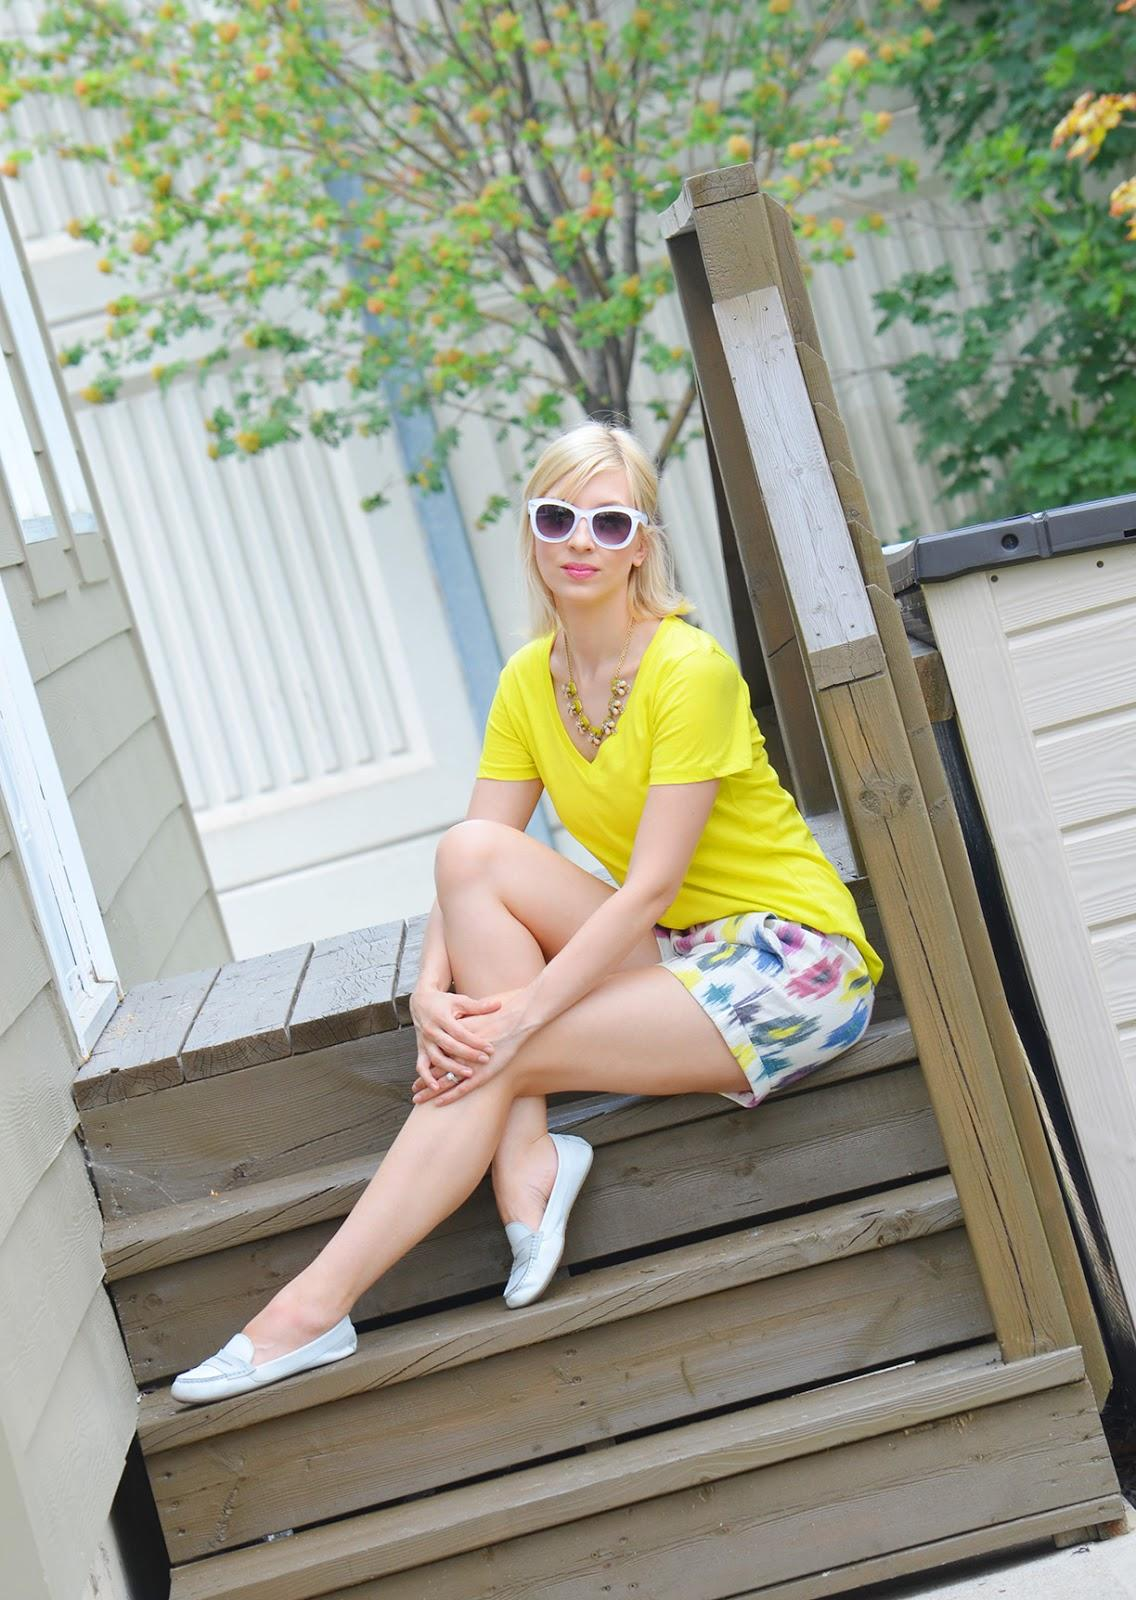 Style, OOTD, shorts, summer style, j. crew, J. Crew style, J. Crew factory, Asos, Gap, forever21, preppy style, preppy, shorts style, chino shorts, jcrew shorts,